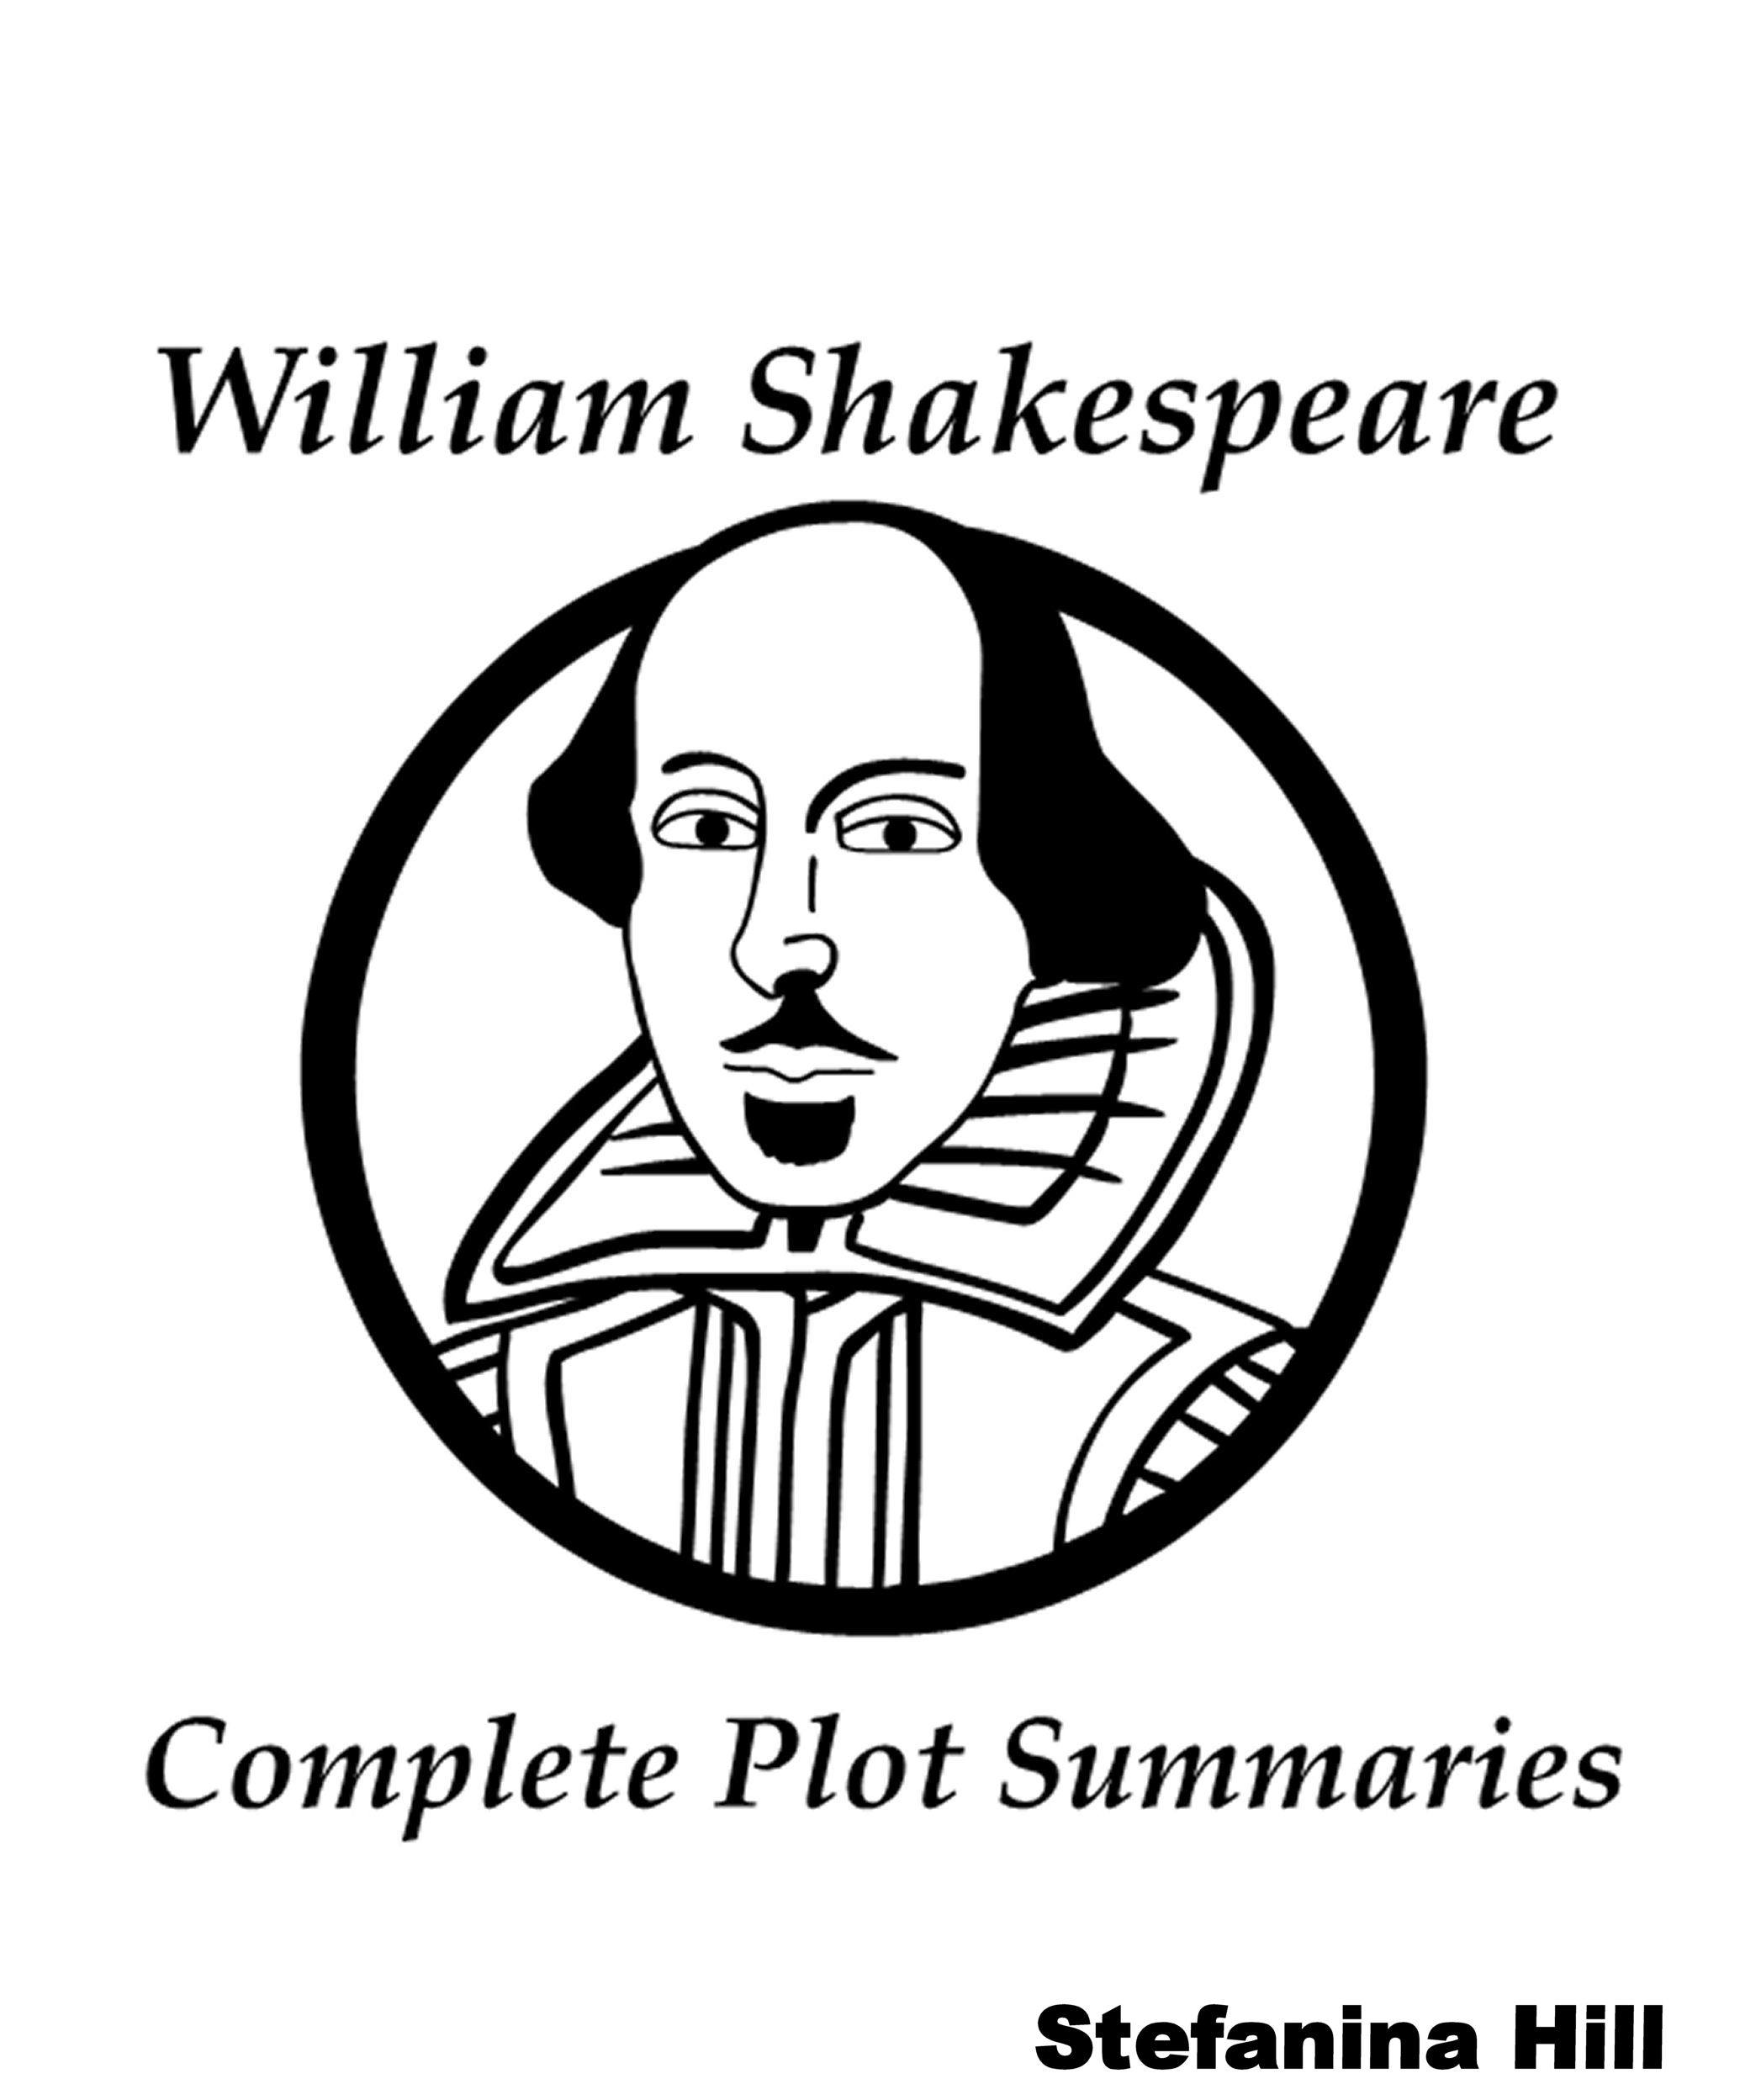 an analysis of the similarities between william shakespeares character hamlet and the 1990s adolesce